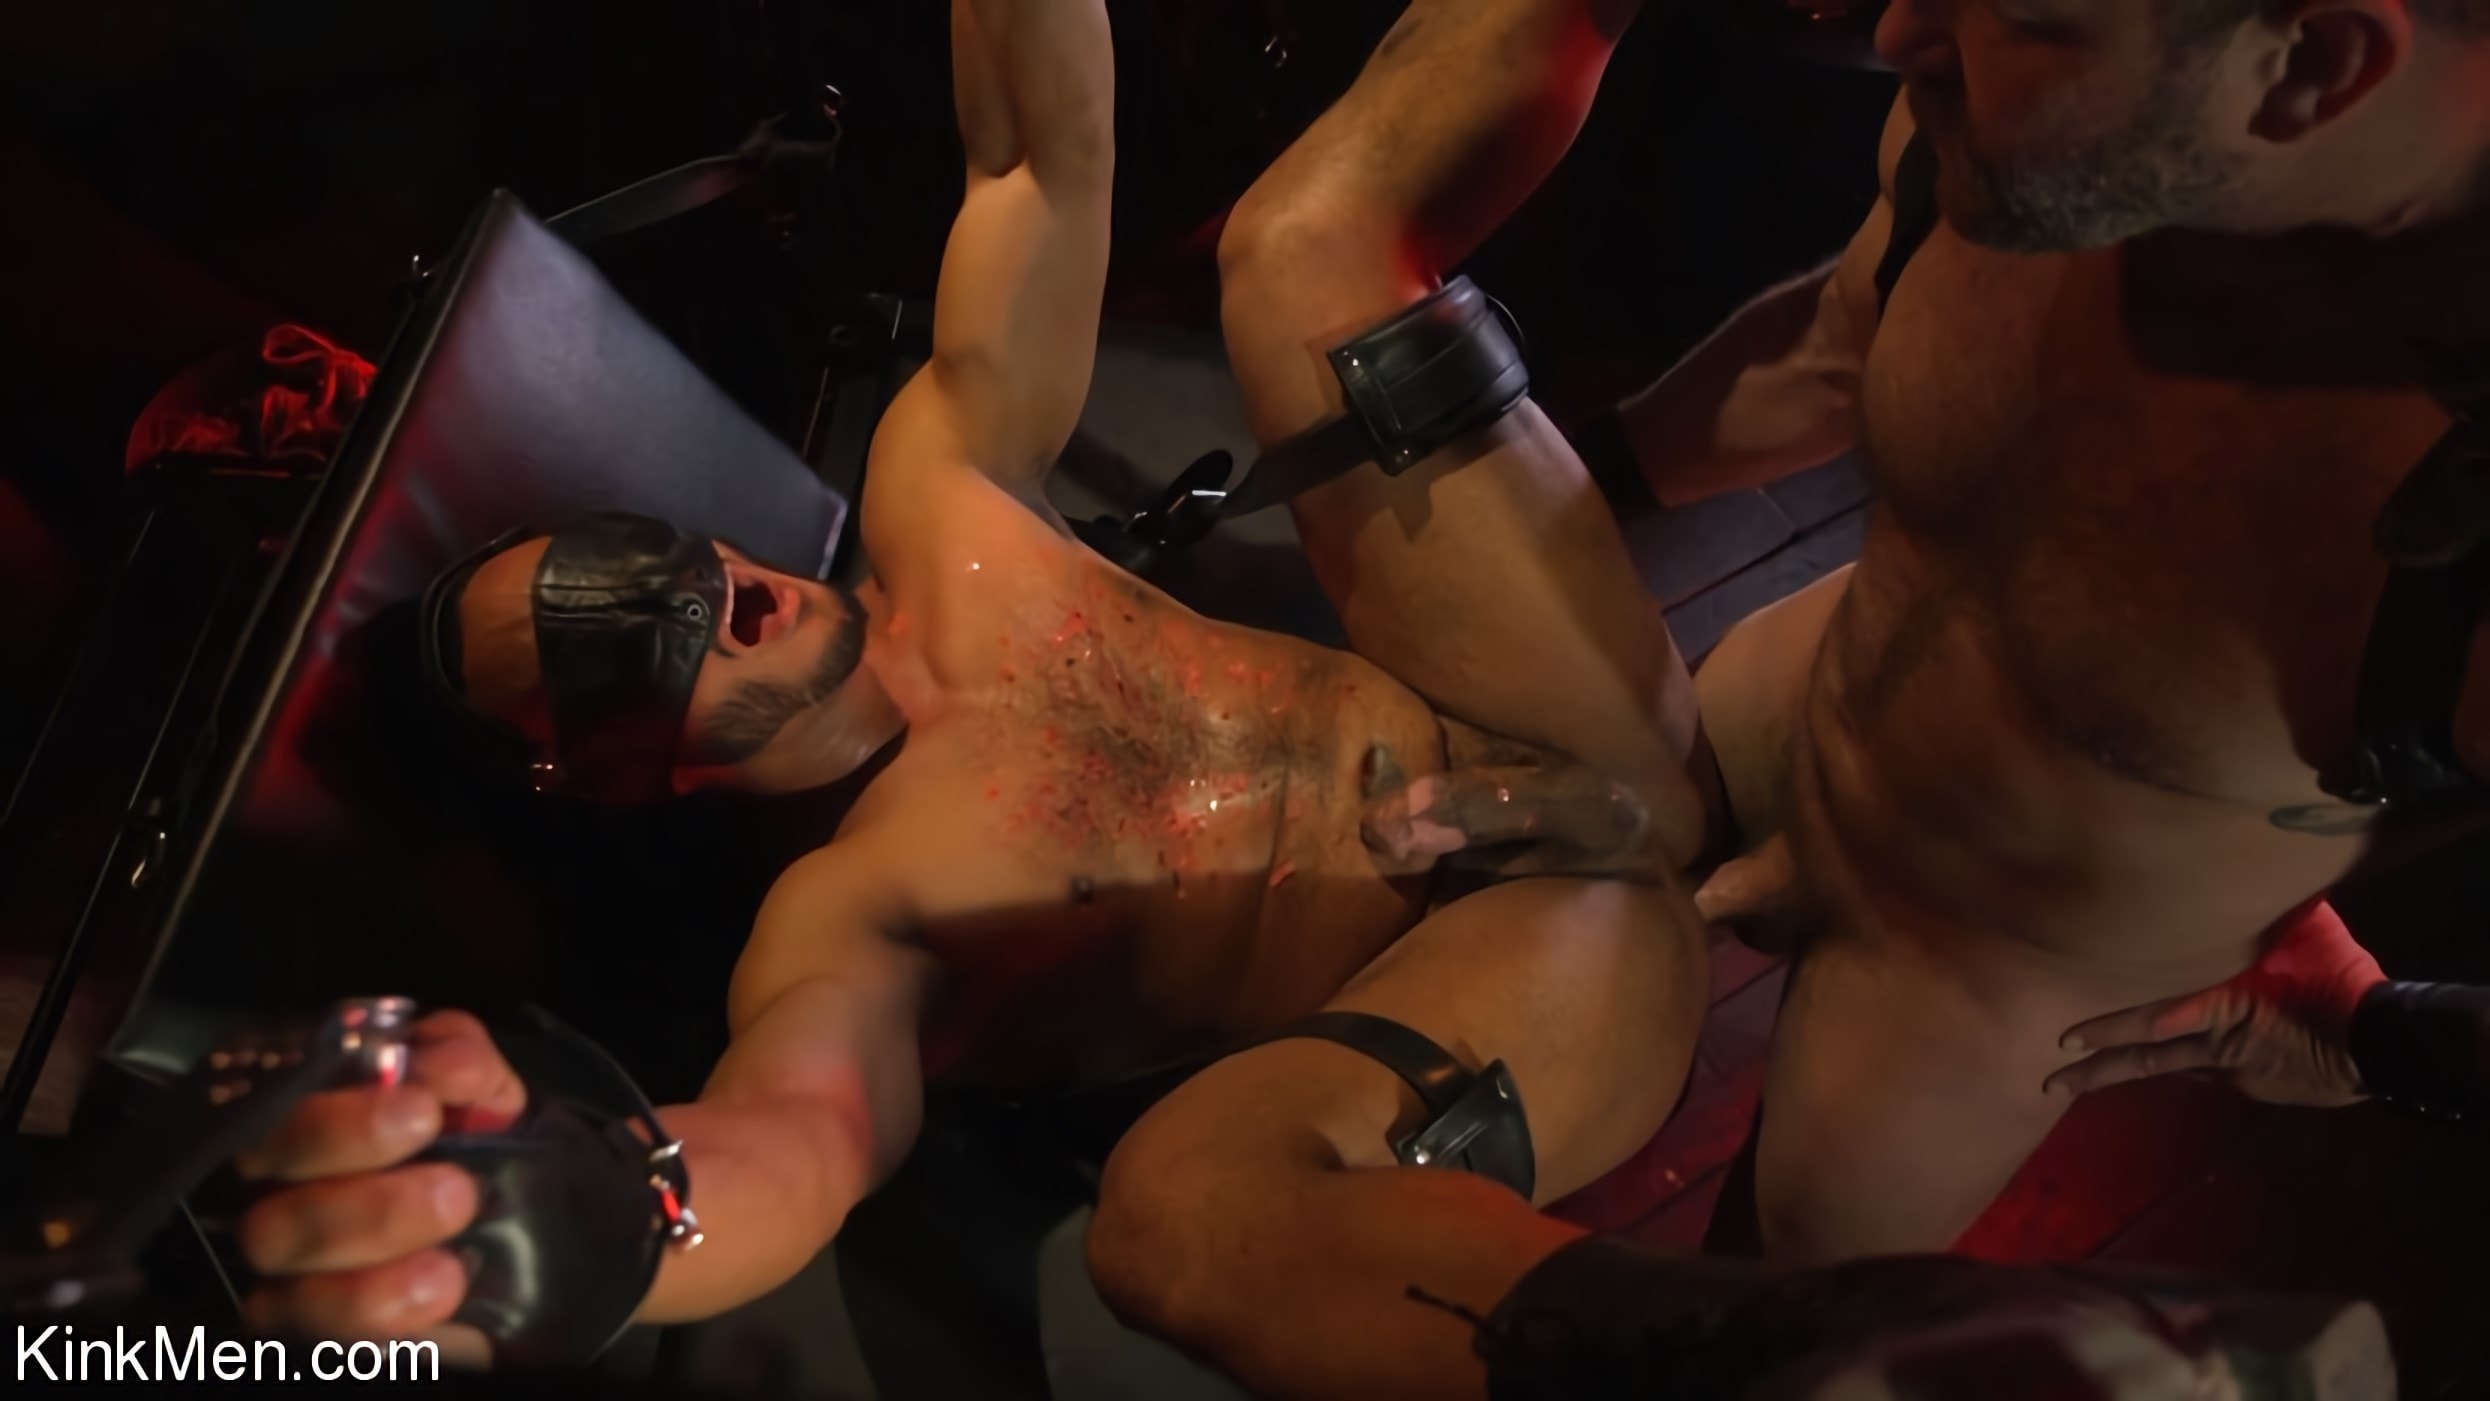 Colby Jansen - Colby Jansen and Dillon Diaz: Stud Fucker | Picture (13)